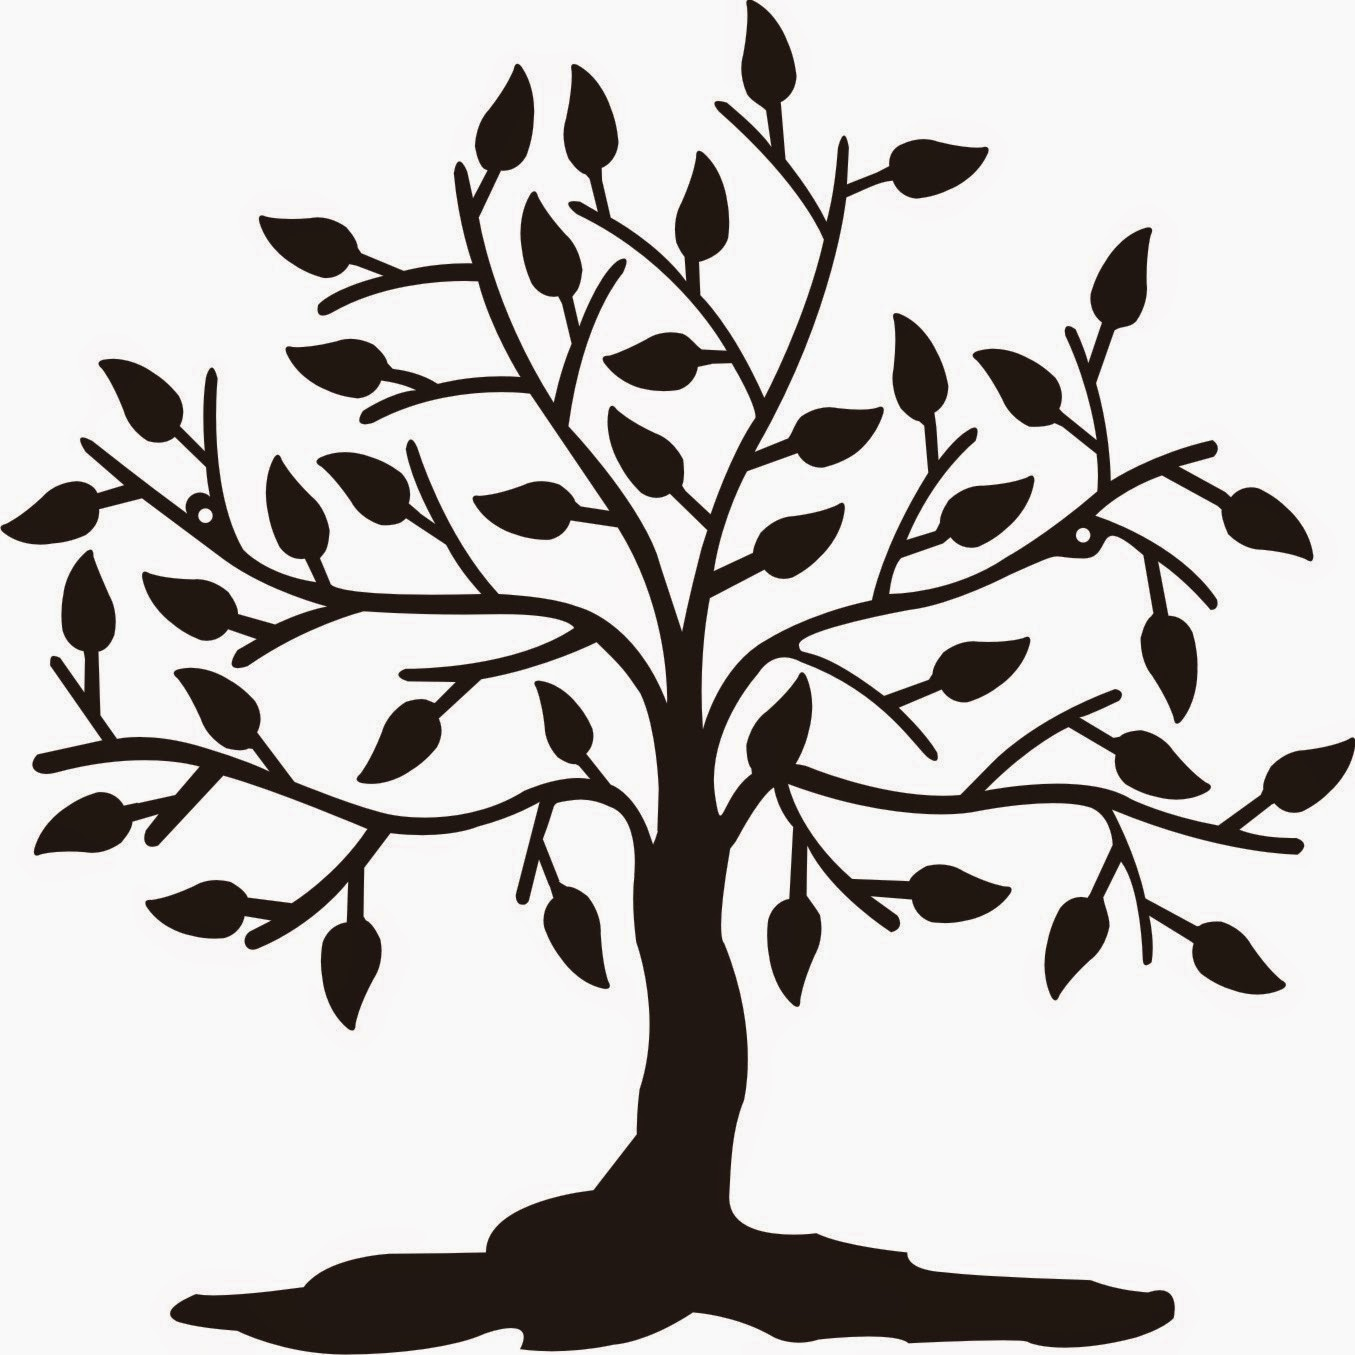 Simple Willow Tree Drawing   Free download on ClipArtMag